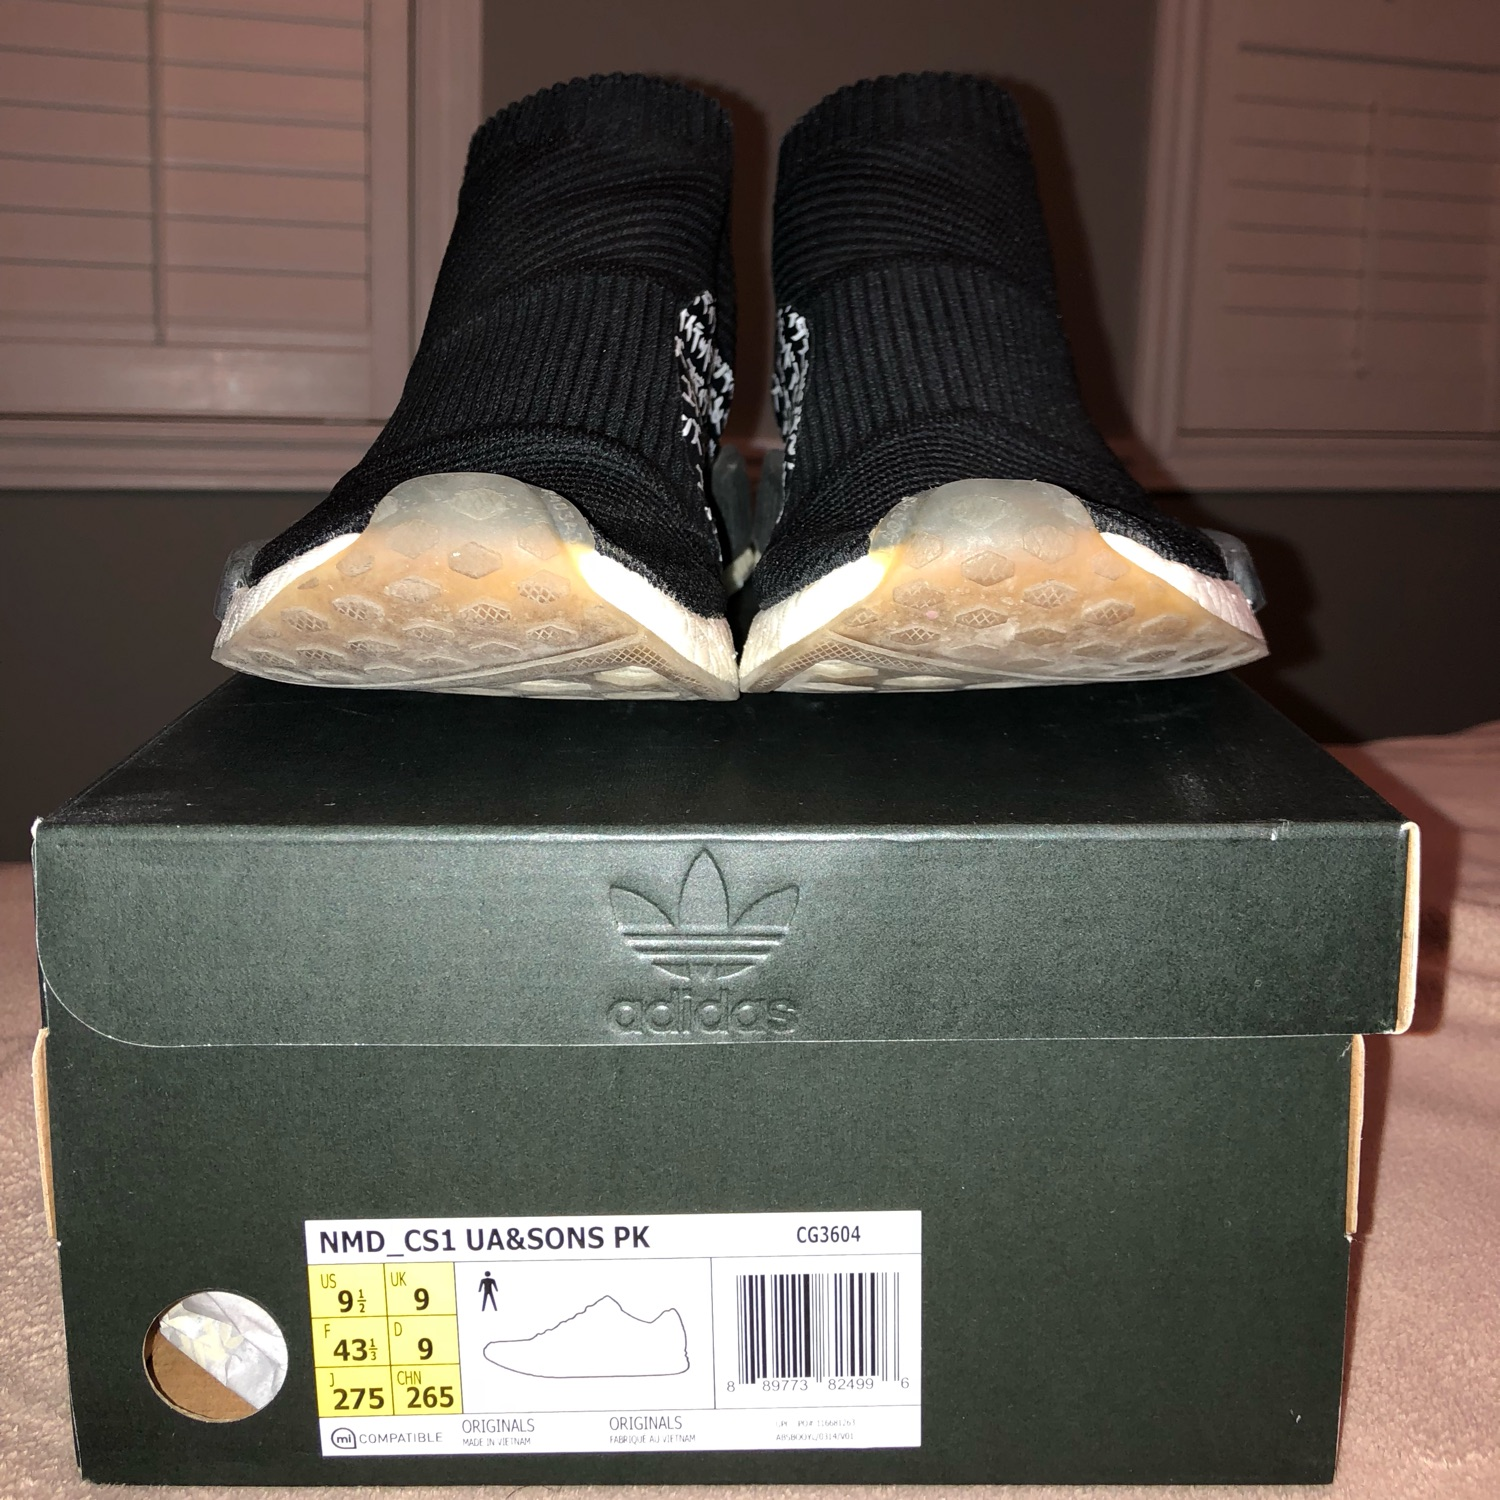 newest 0208f 42198 Adidas Mikitype Nmd Cs1 United Arrows & Sons